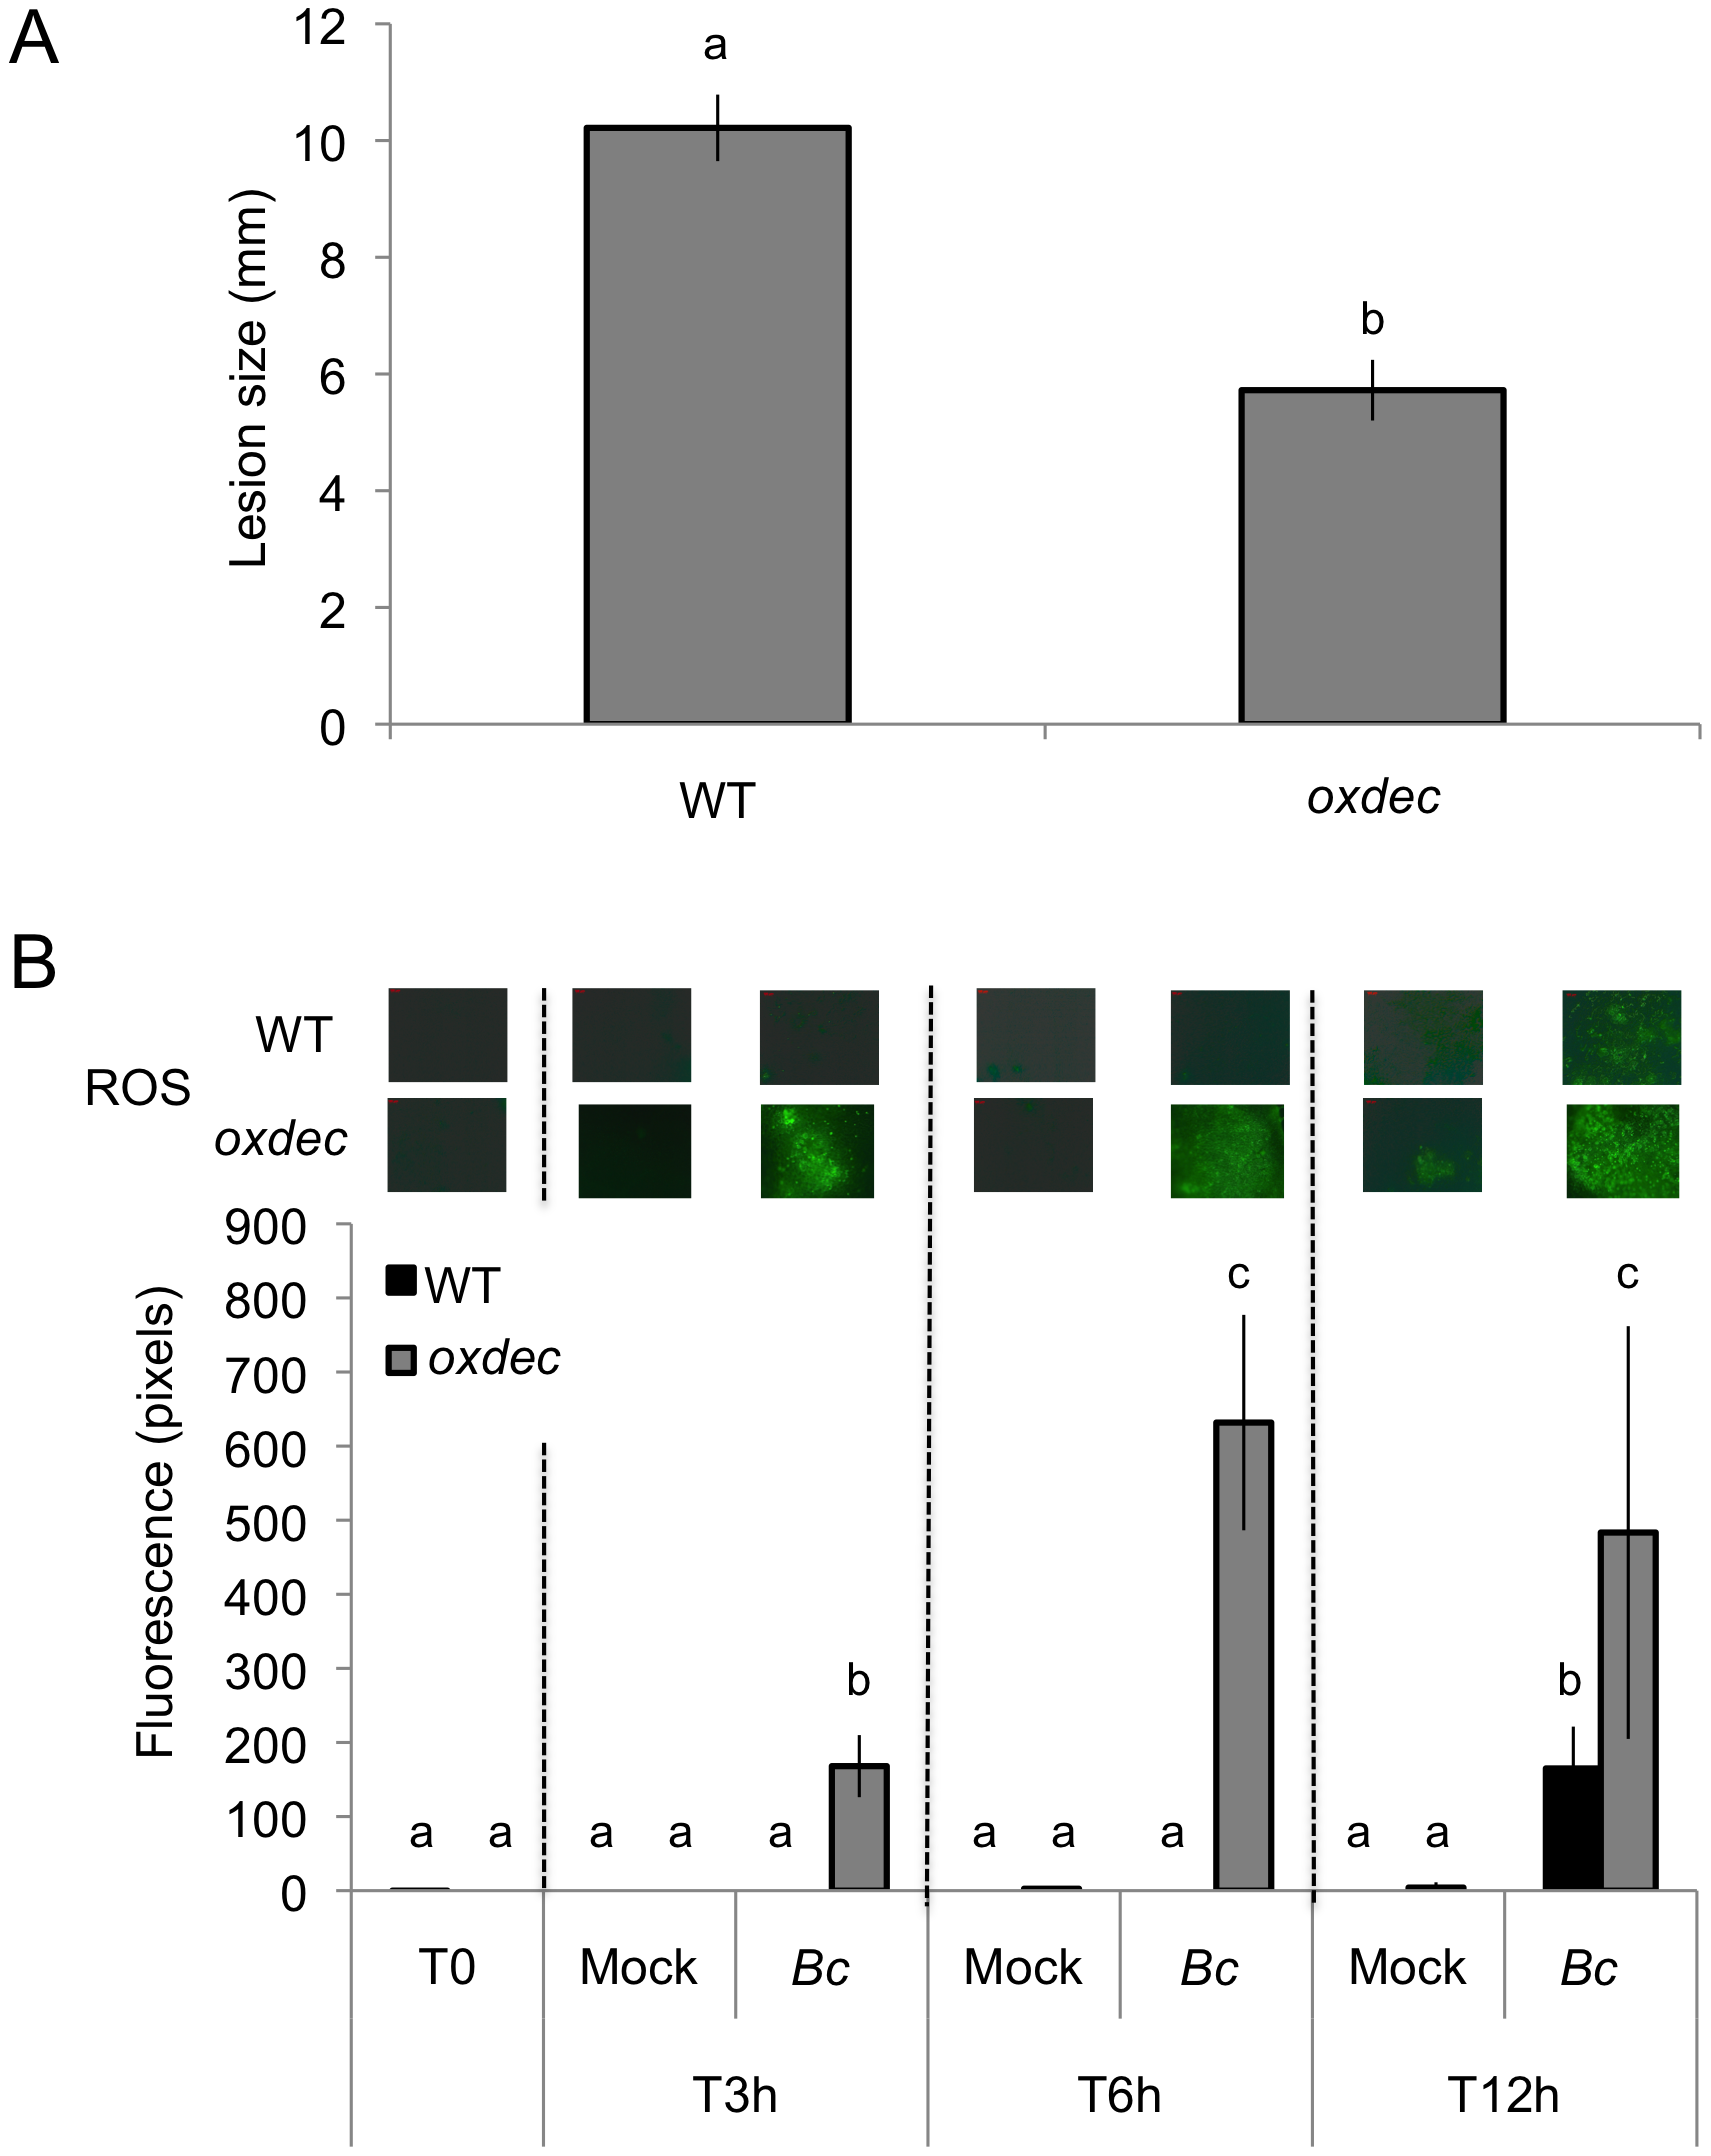 Effect of <i>OXALATE DECRABOXYLASE</i> over expression in <i>A. thaliana</i> on resistance to <i>B. cinerea</i> and ROS production.